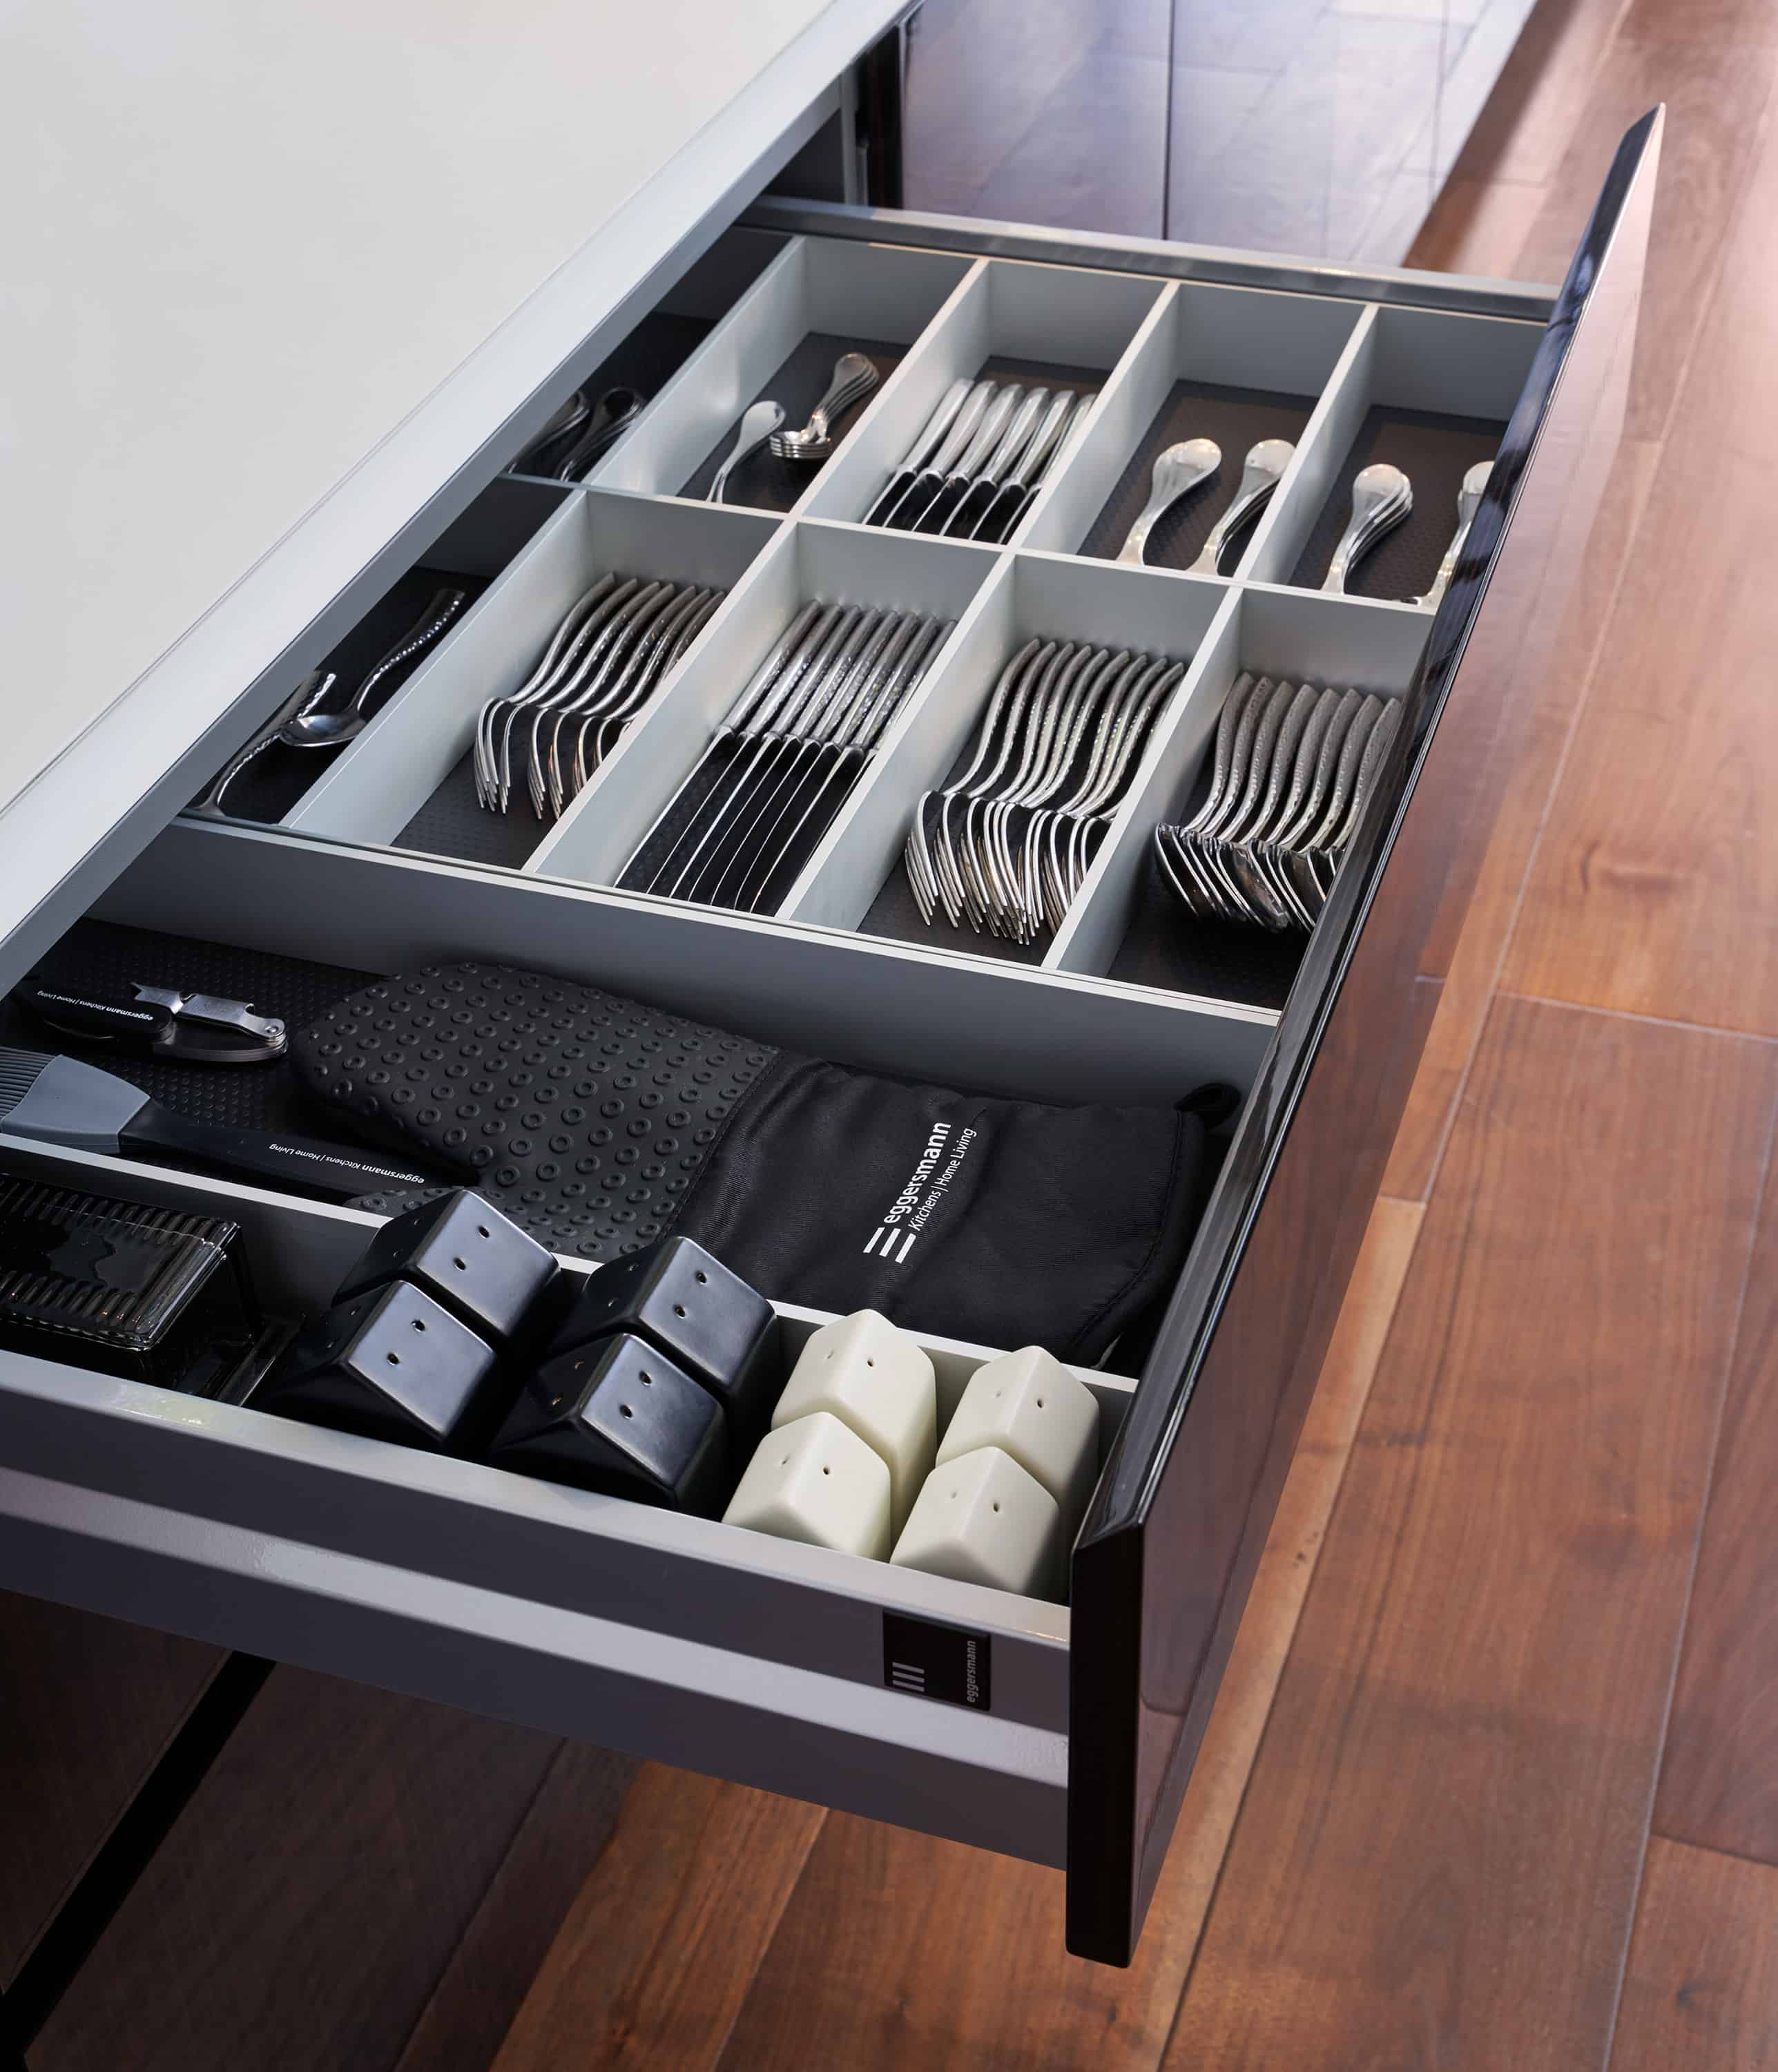 eggersmann-boxtec drawer organization accessories for silverware and dining tools